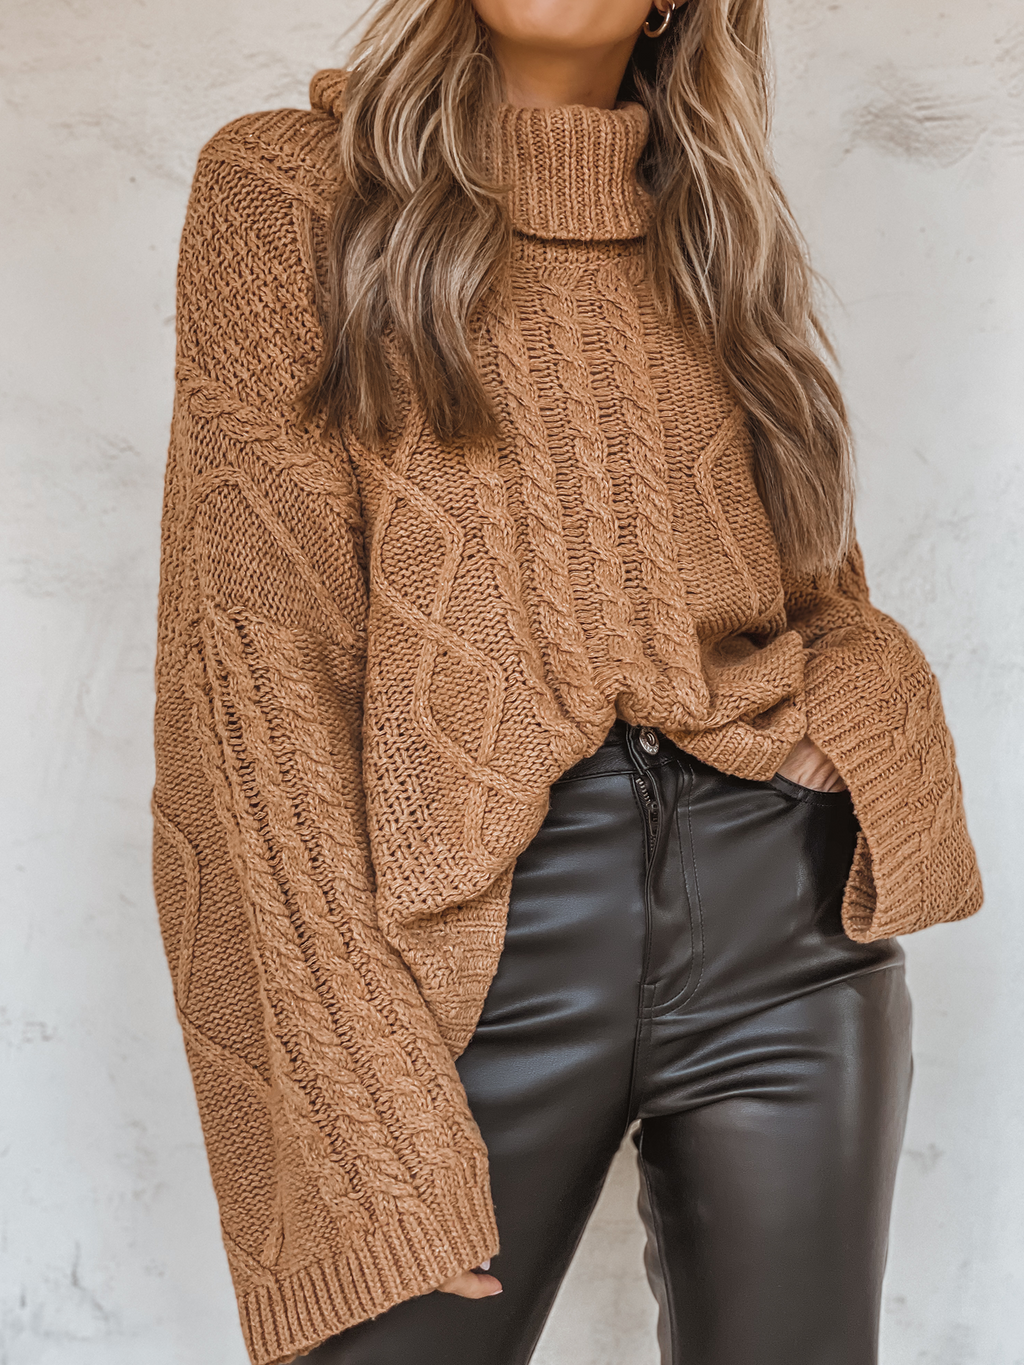 Decor Knit Turtle Neck Sweater in Camel - Stitch And Feather